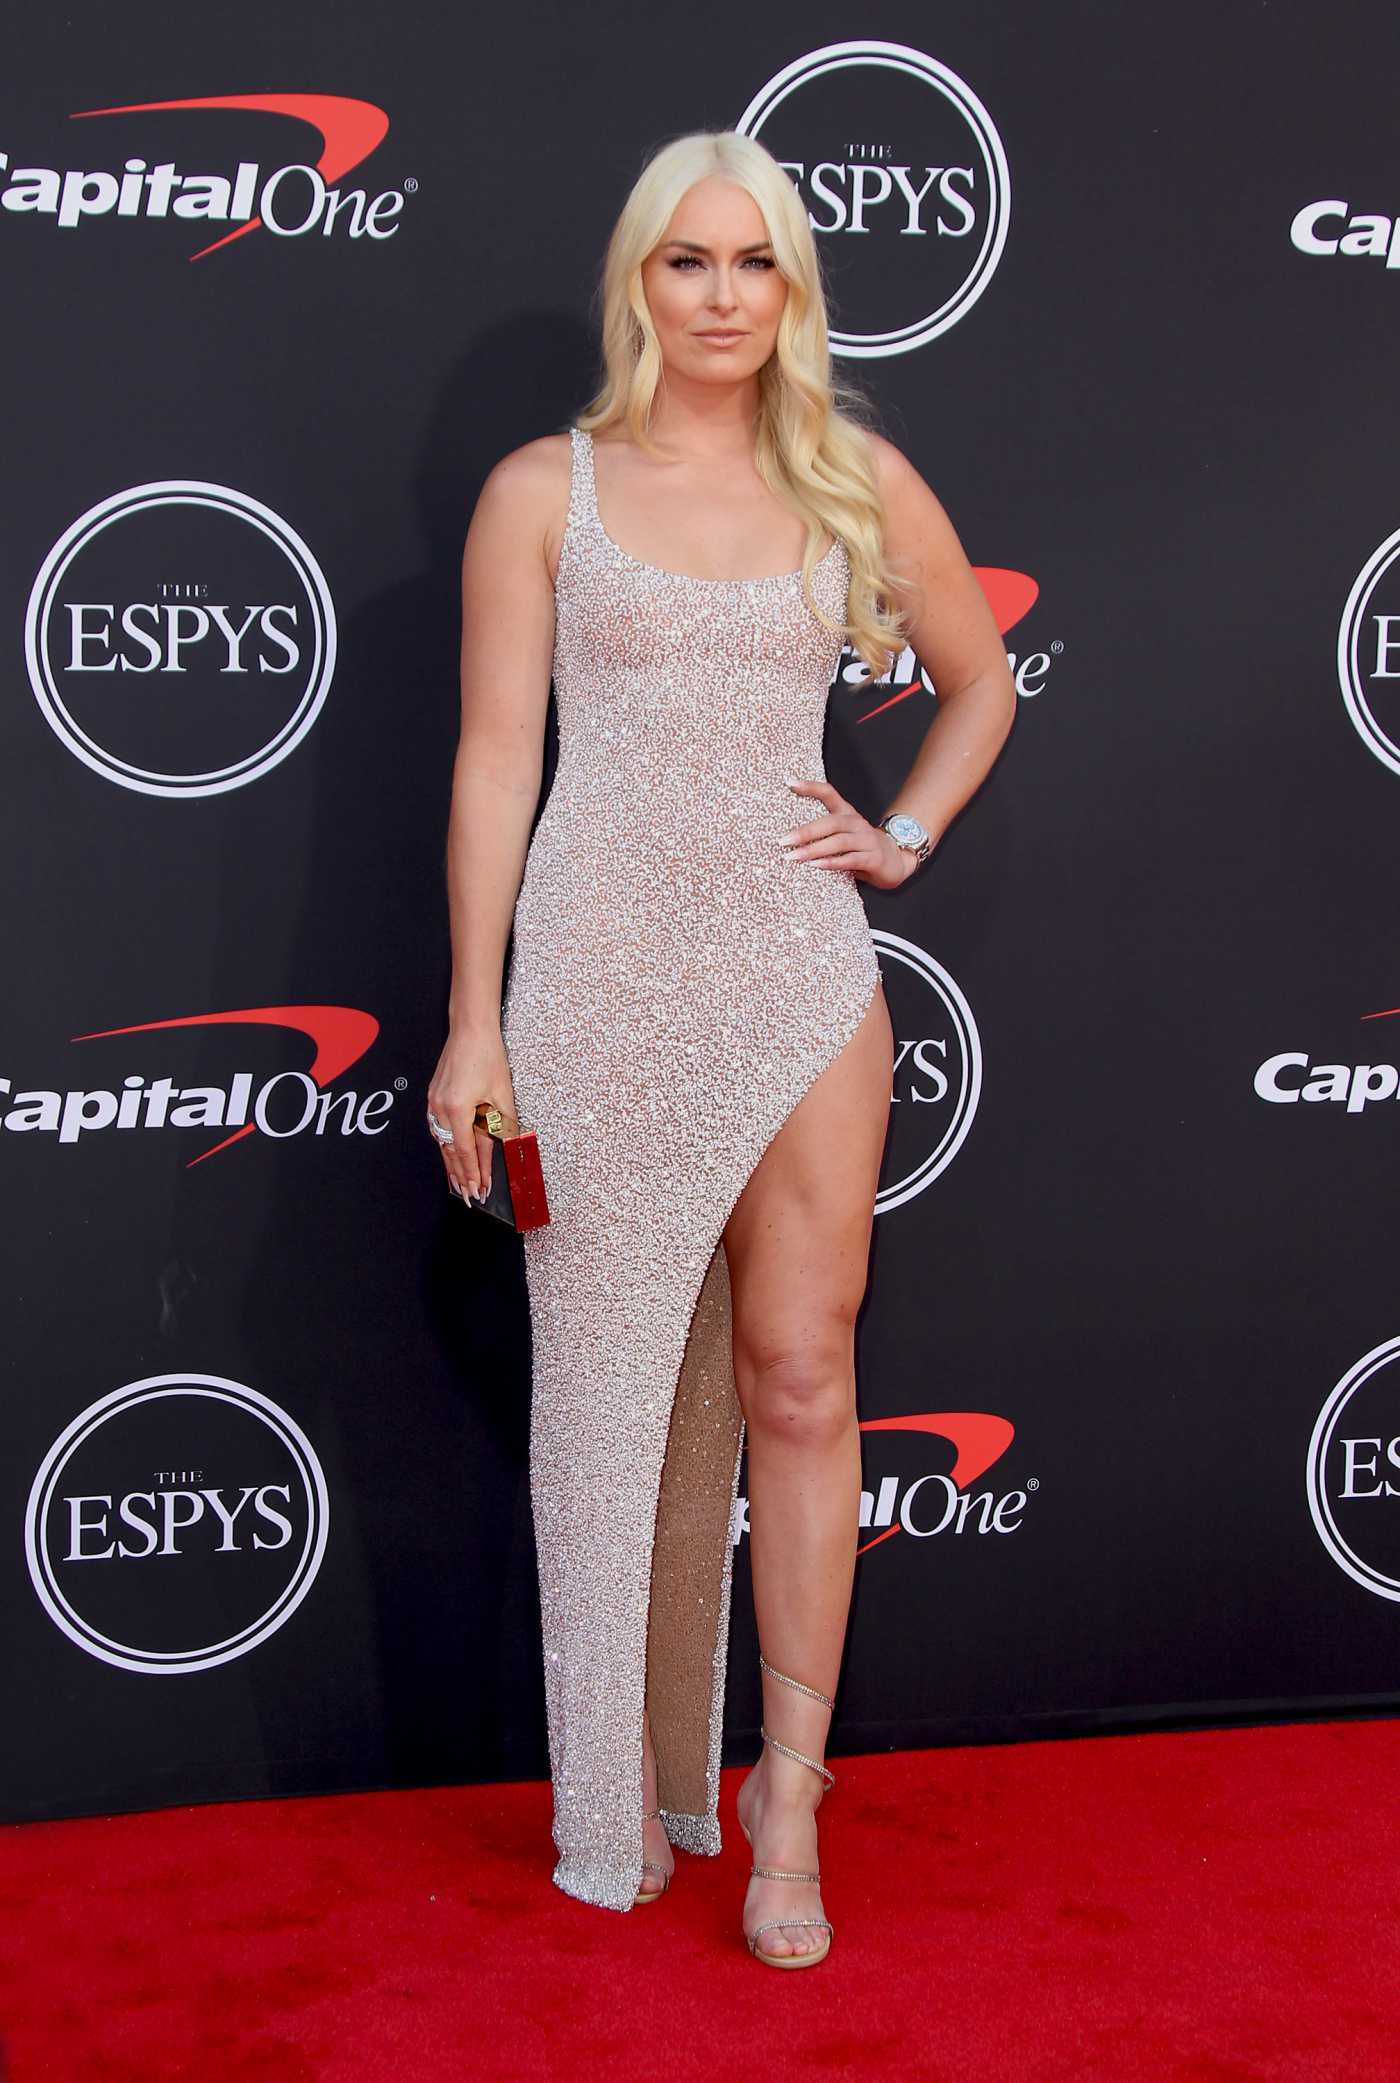 Lindsey Vonn Attends 2019 ESPY Awards in Los Angeles 07/10/2019